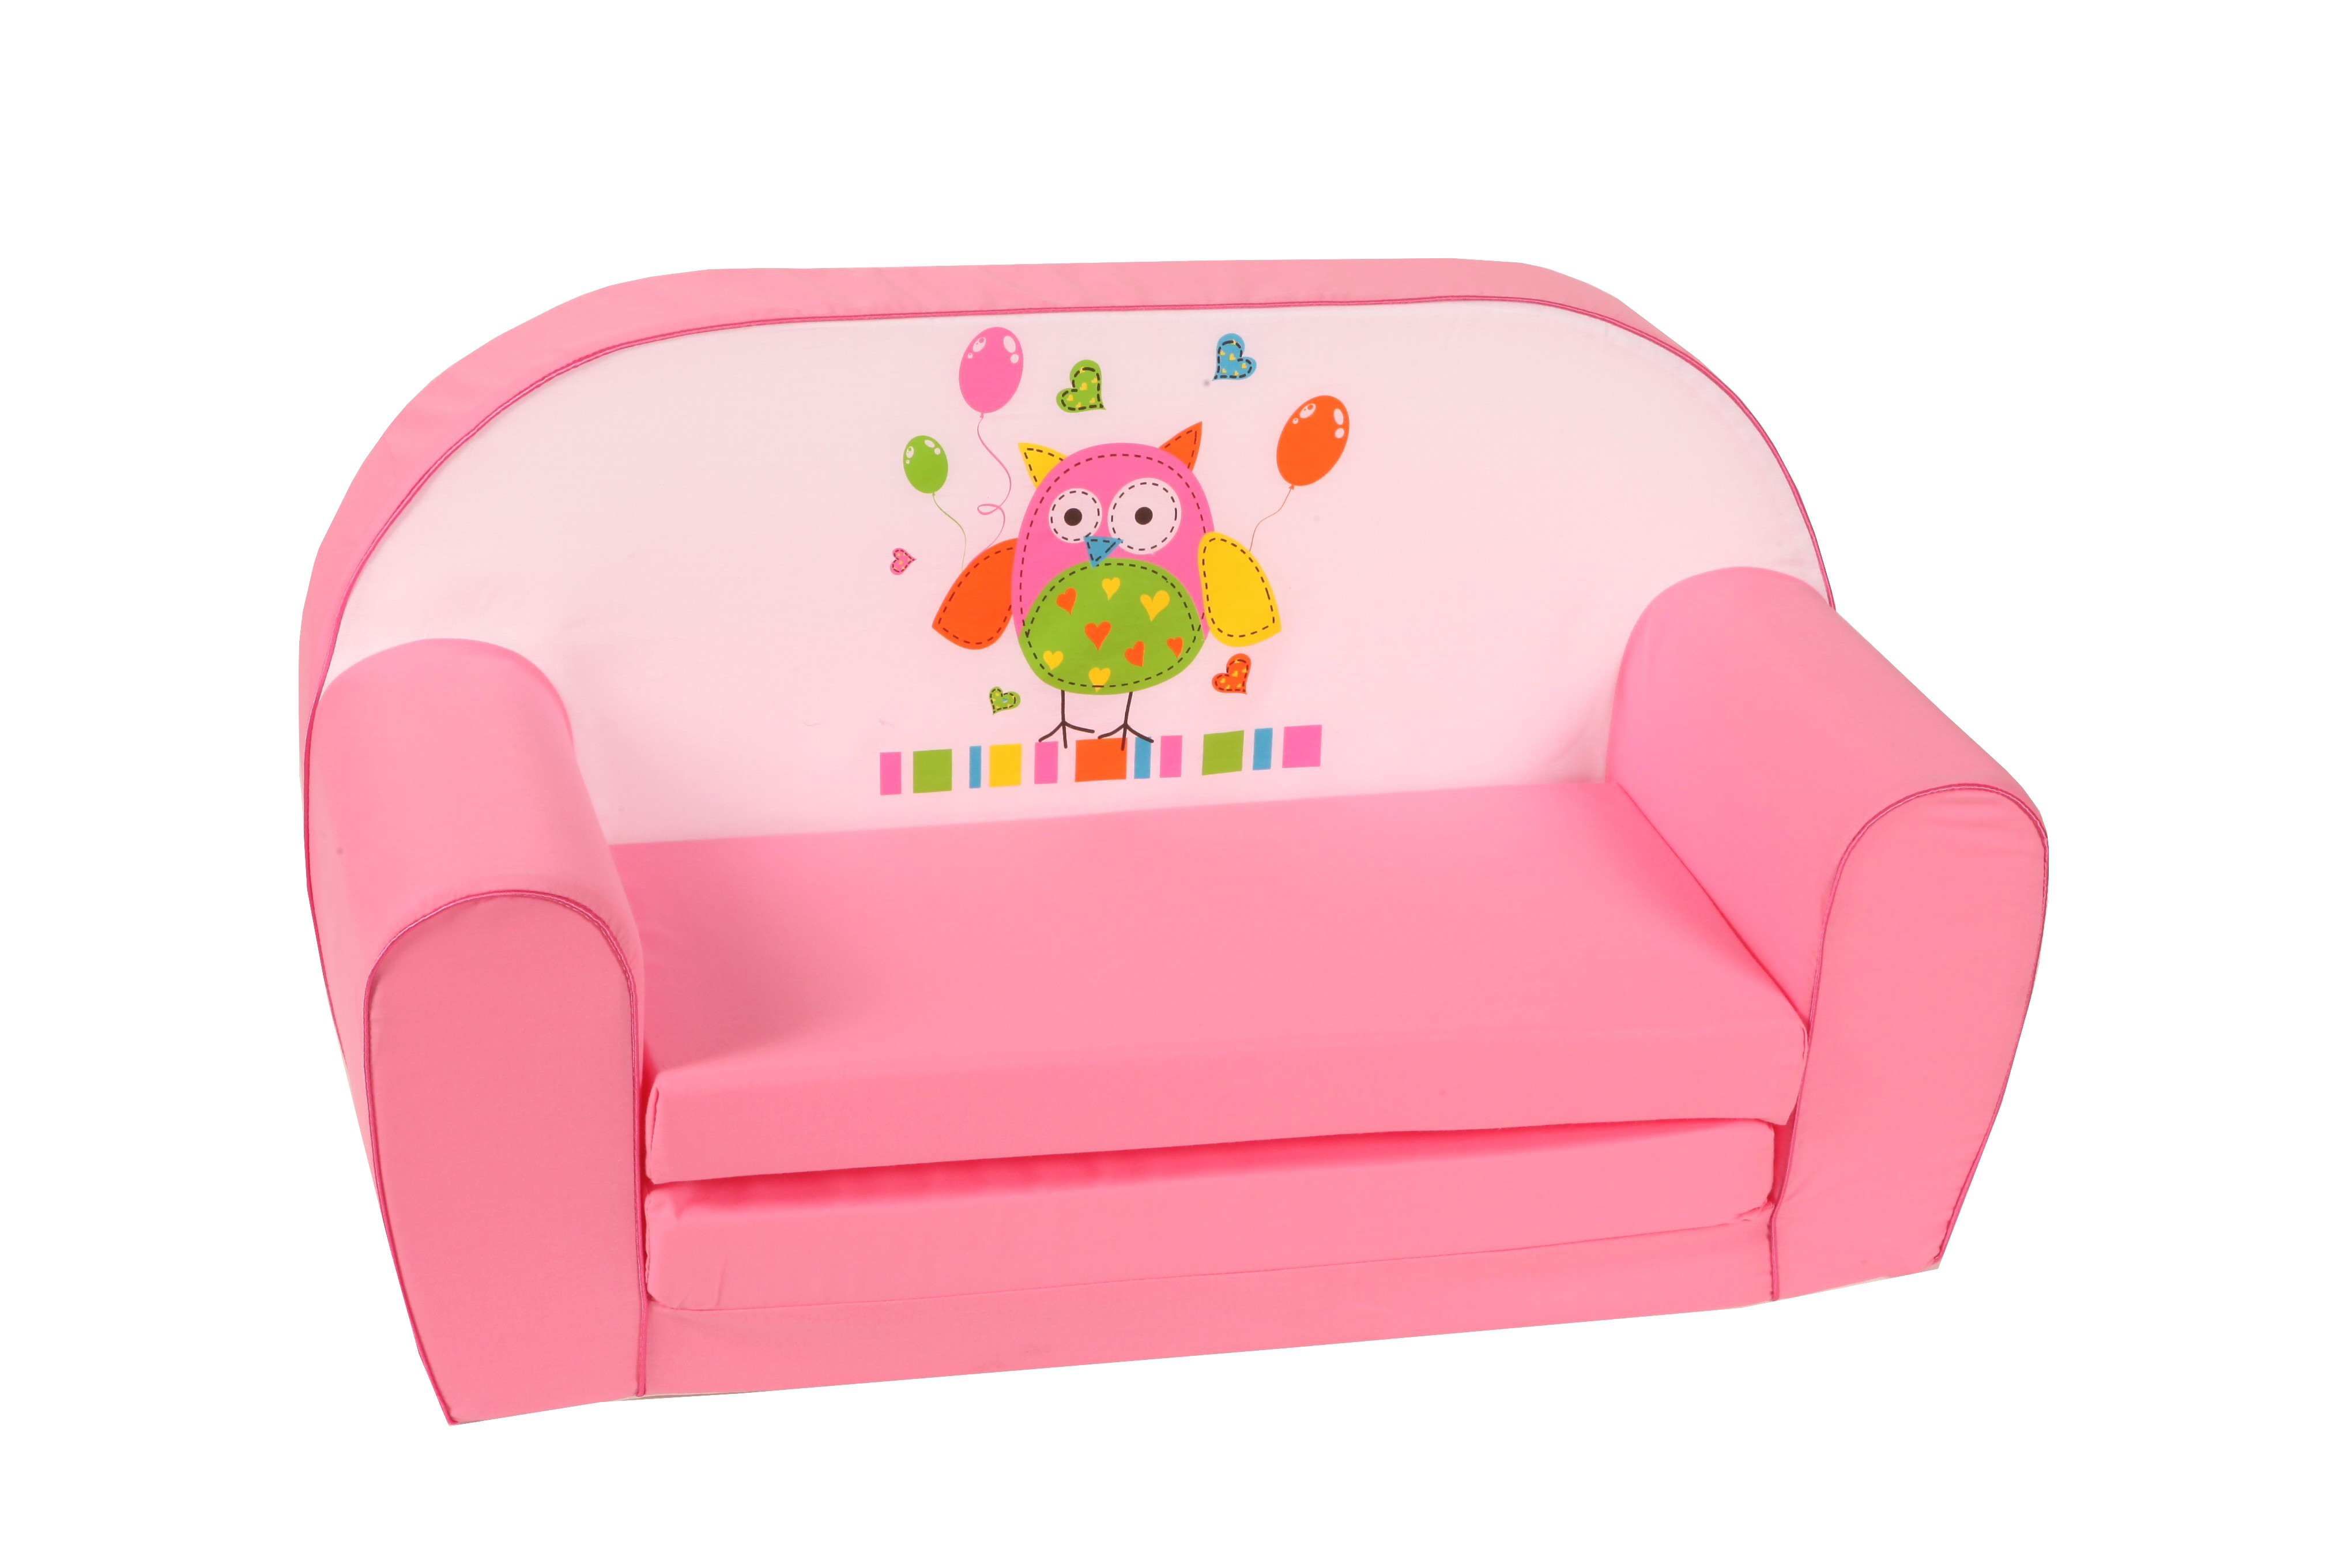 Knorr baby gmbh kinder schlafsofa eule rosa online for Schlafsofa rosa